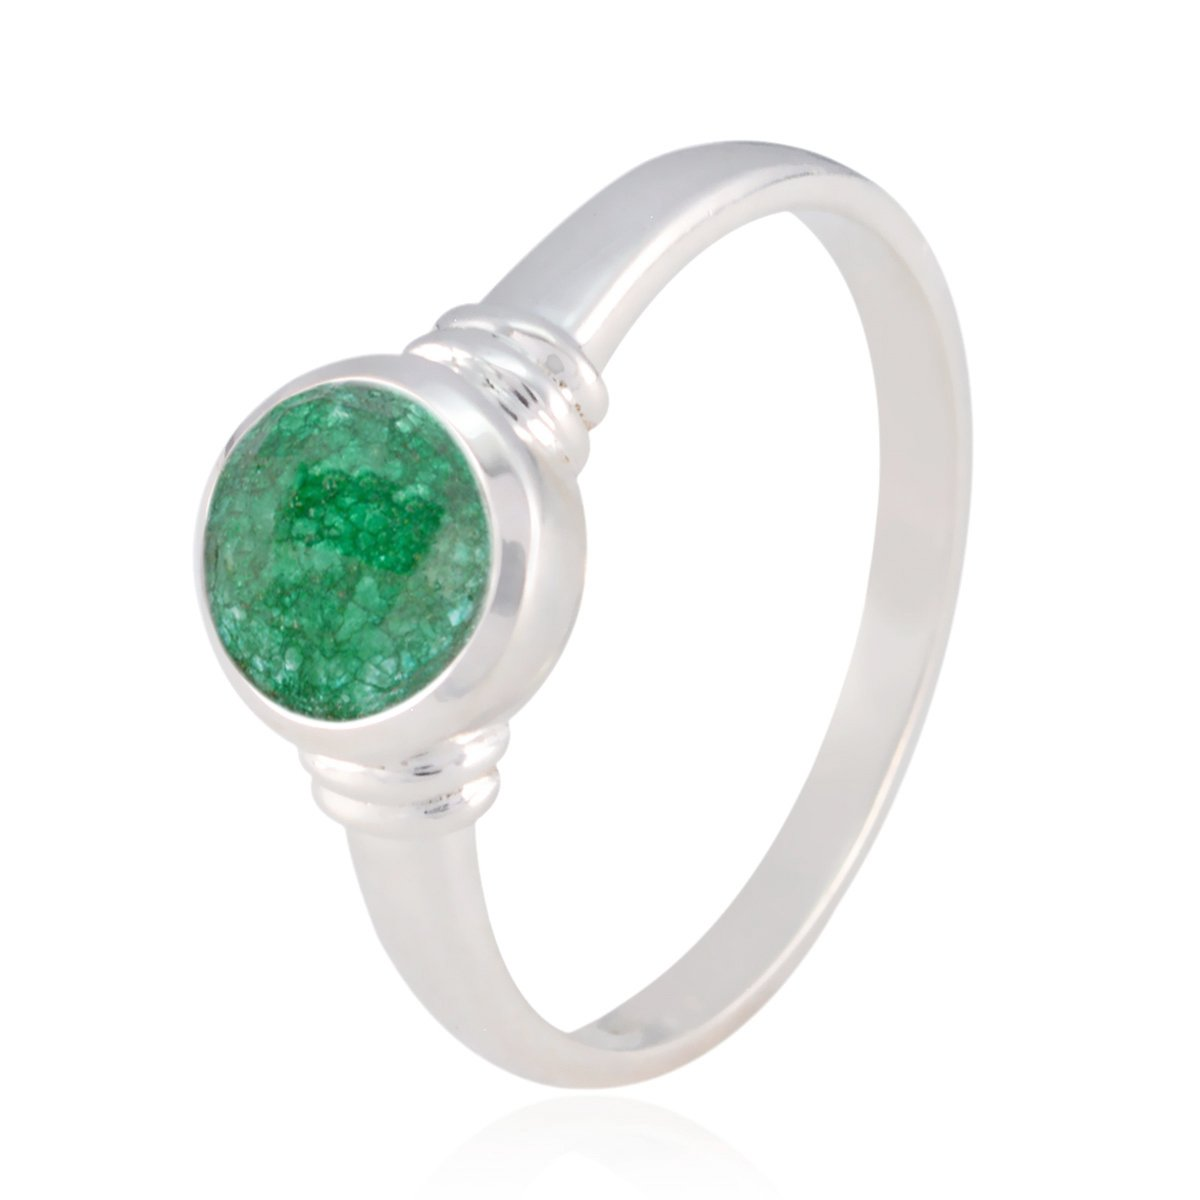 Natural Gemstone Round Faceted Indianemerald Ring Jewelry Great Selling Items Gift for Good Friday Phases of The Moon Sterling Silver Green Indianemerald Natural Gemstone Ring